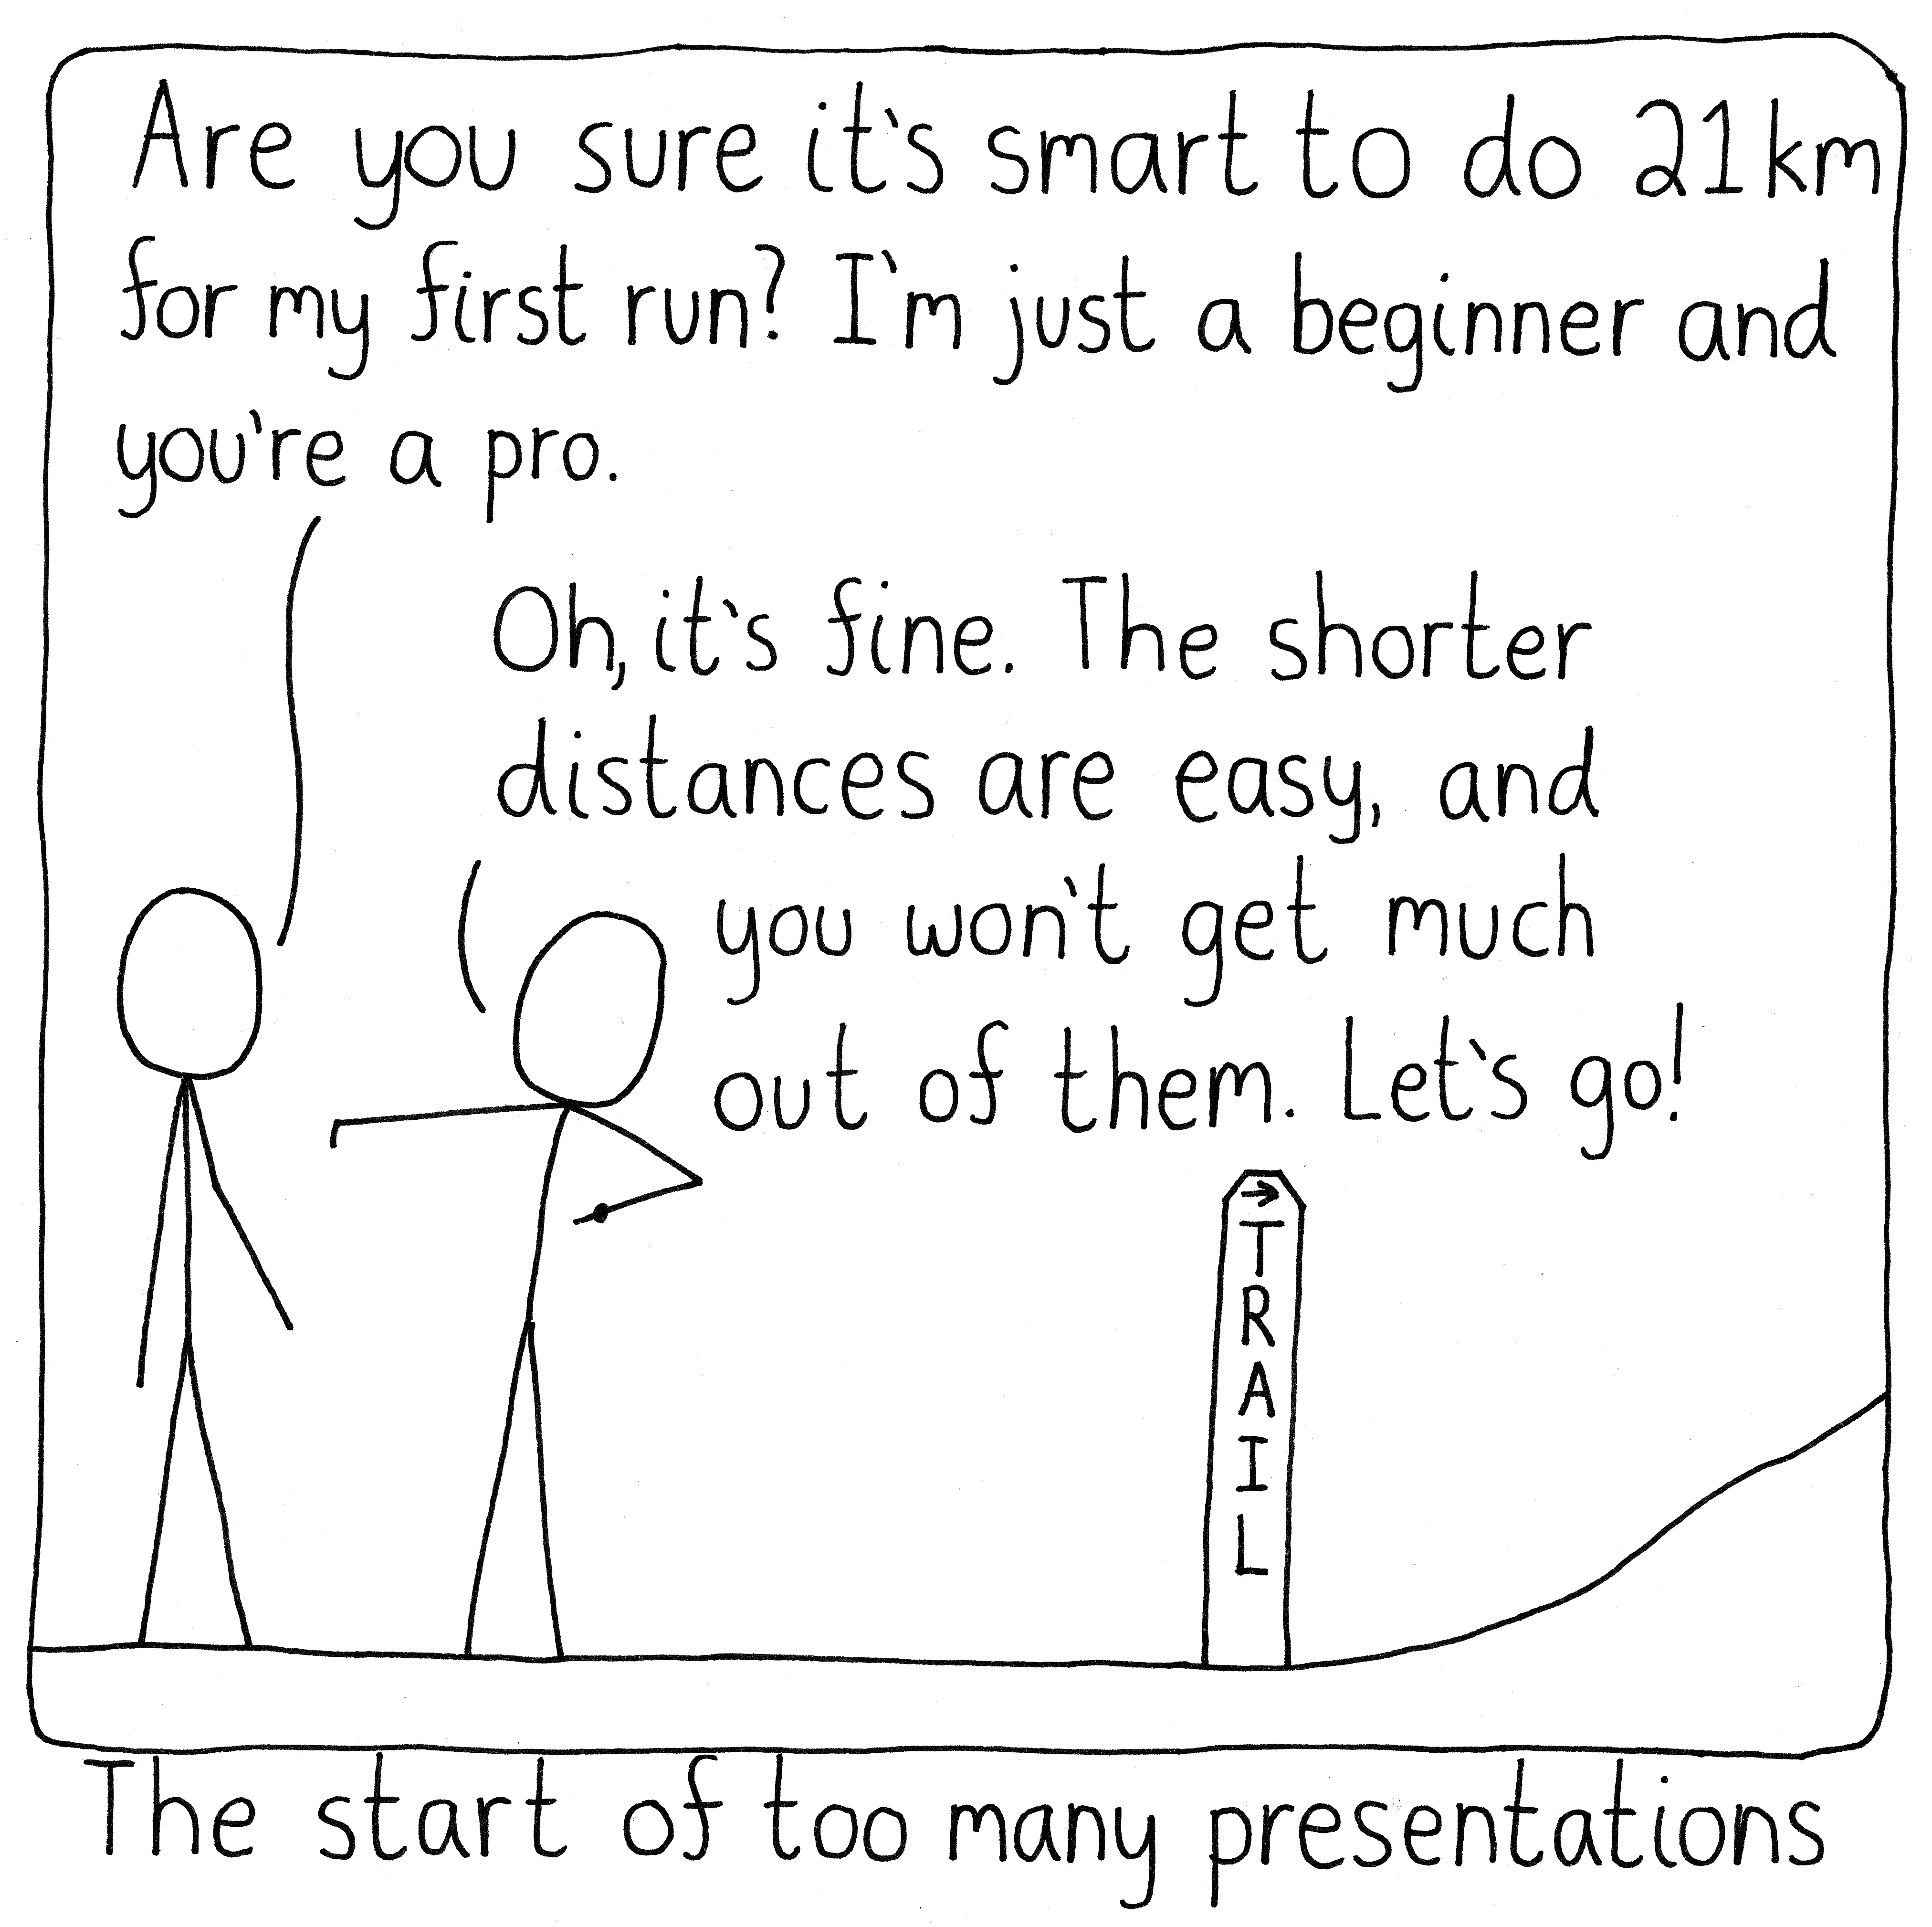 Too many presentations go much faster than they should.